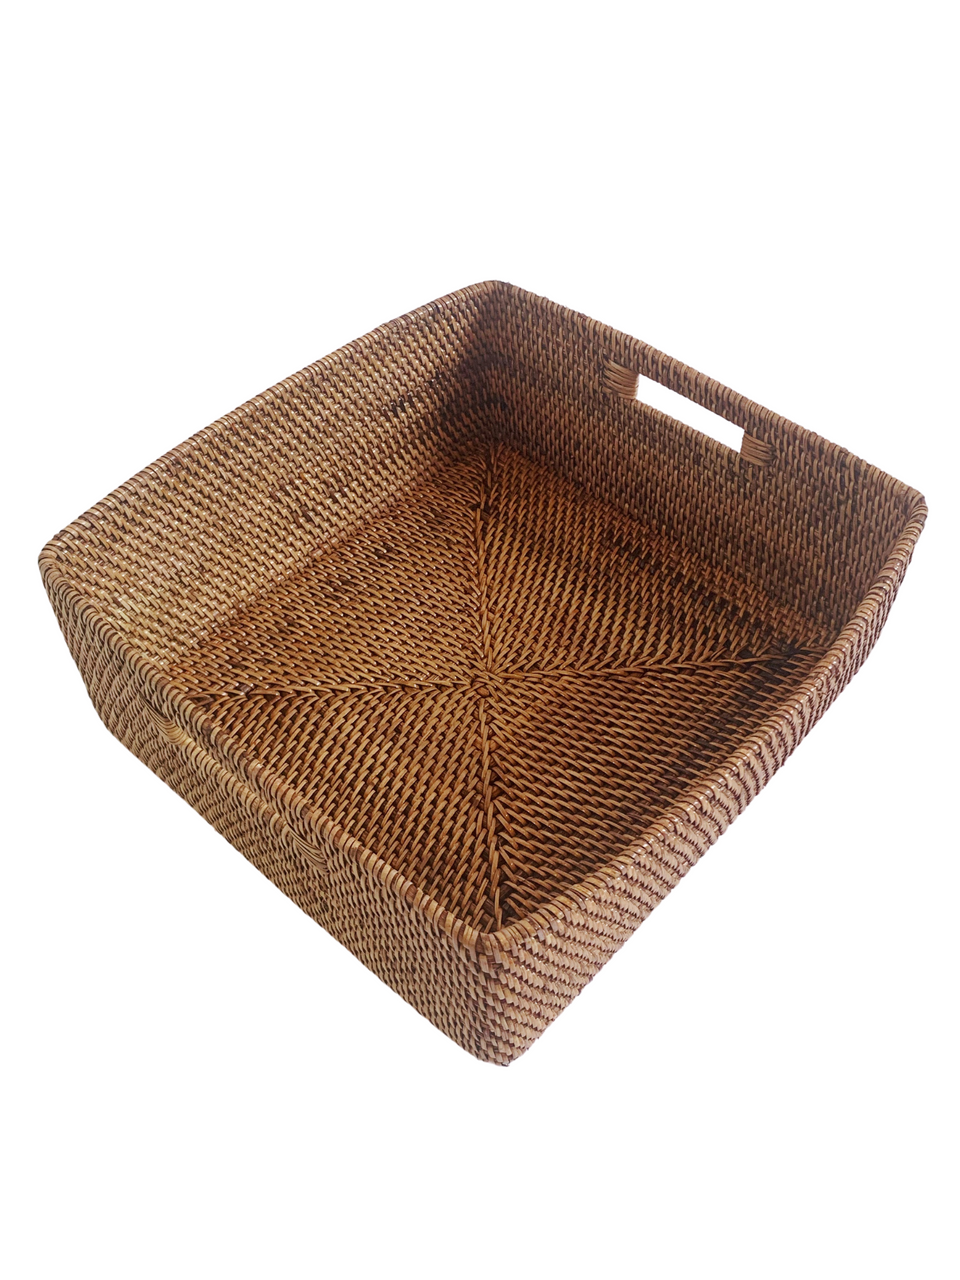 Storage Basket - Medium - Antiqued Rattan